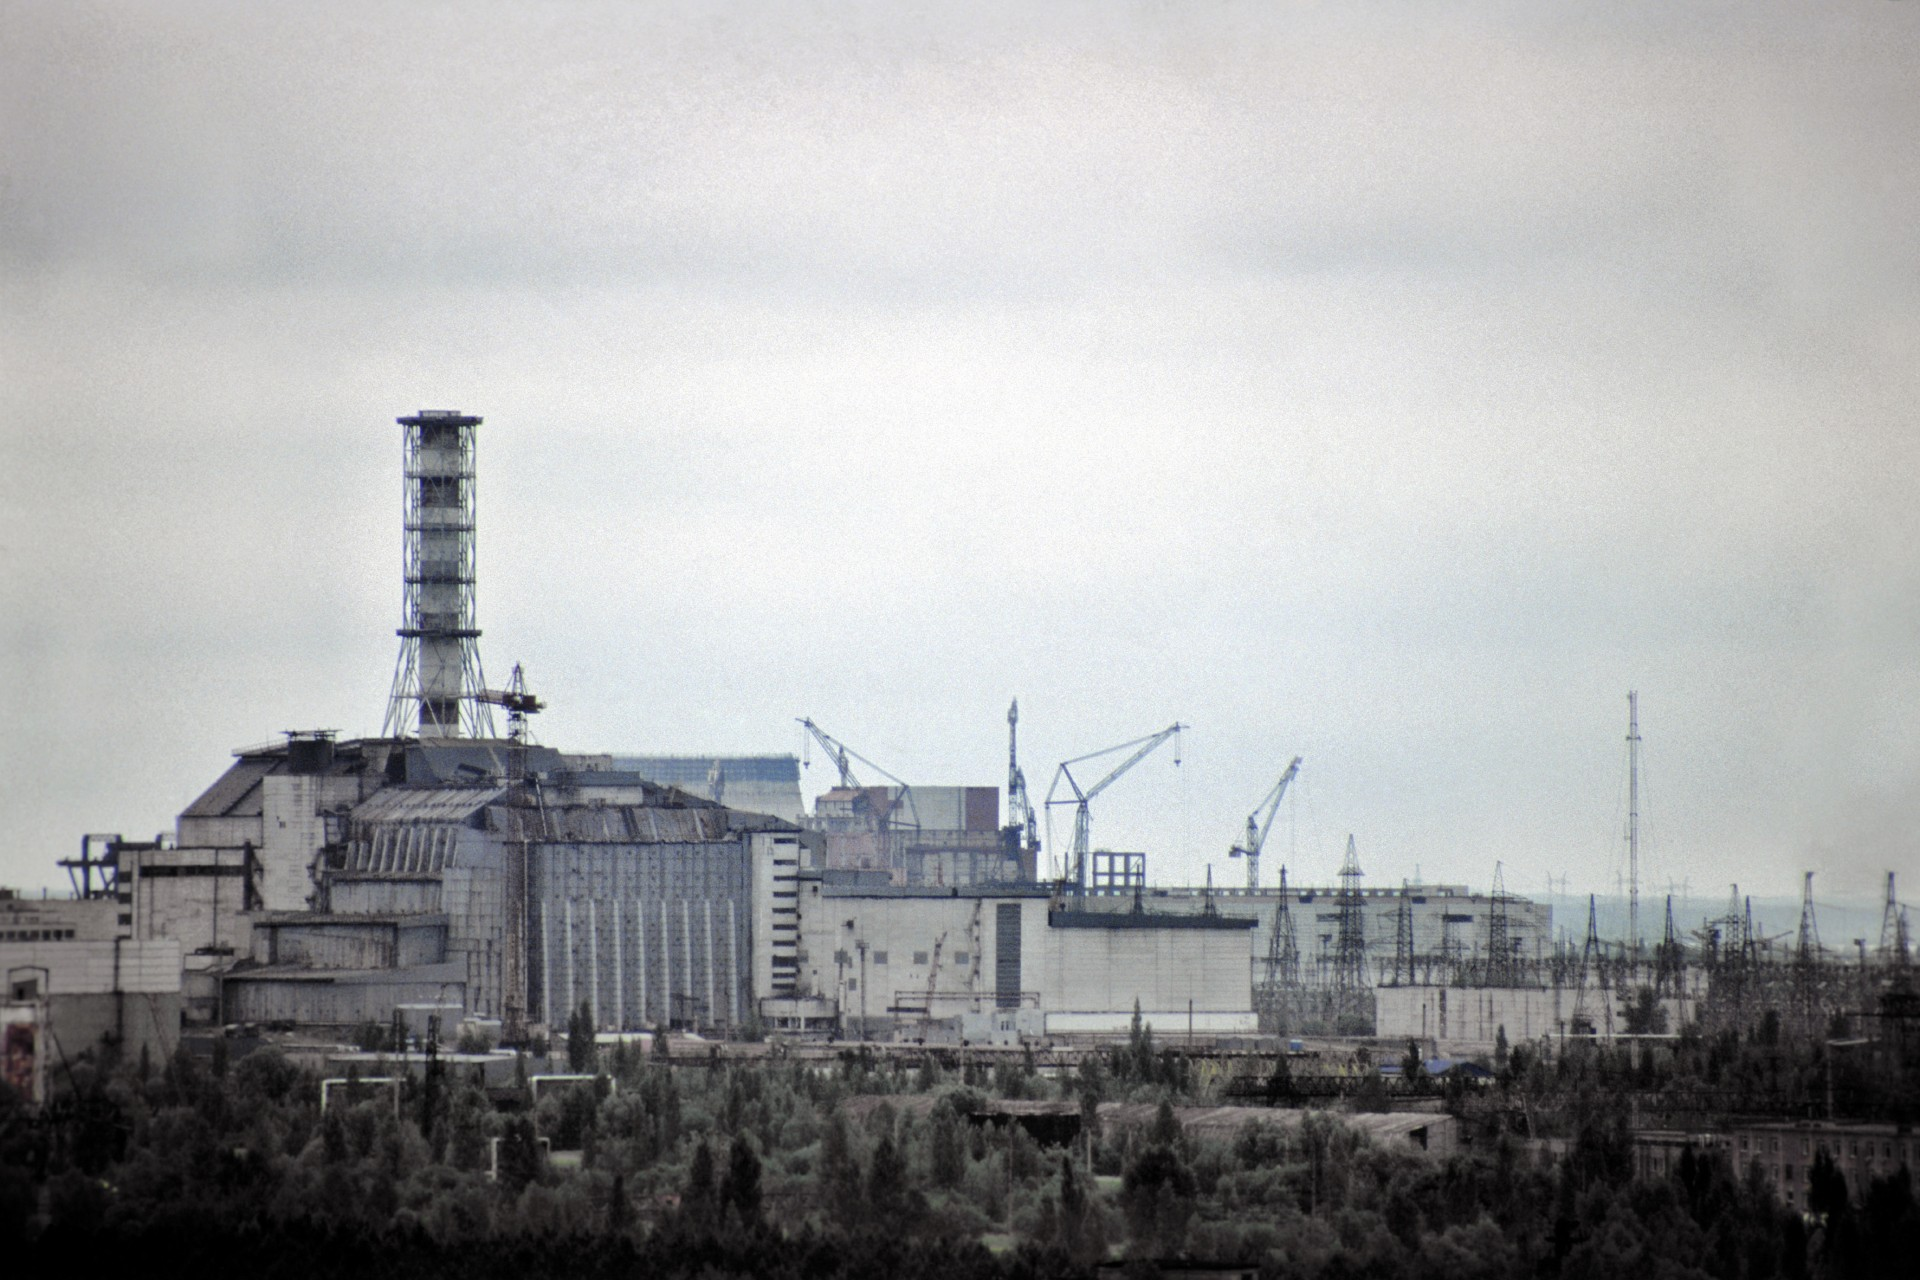 chernobyl research papers The chernobyl accident research paper - free download as pdf file (pdf), text file (txt) or read online for free.